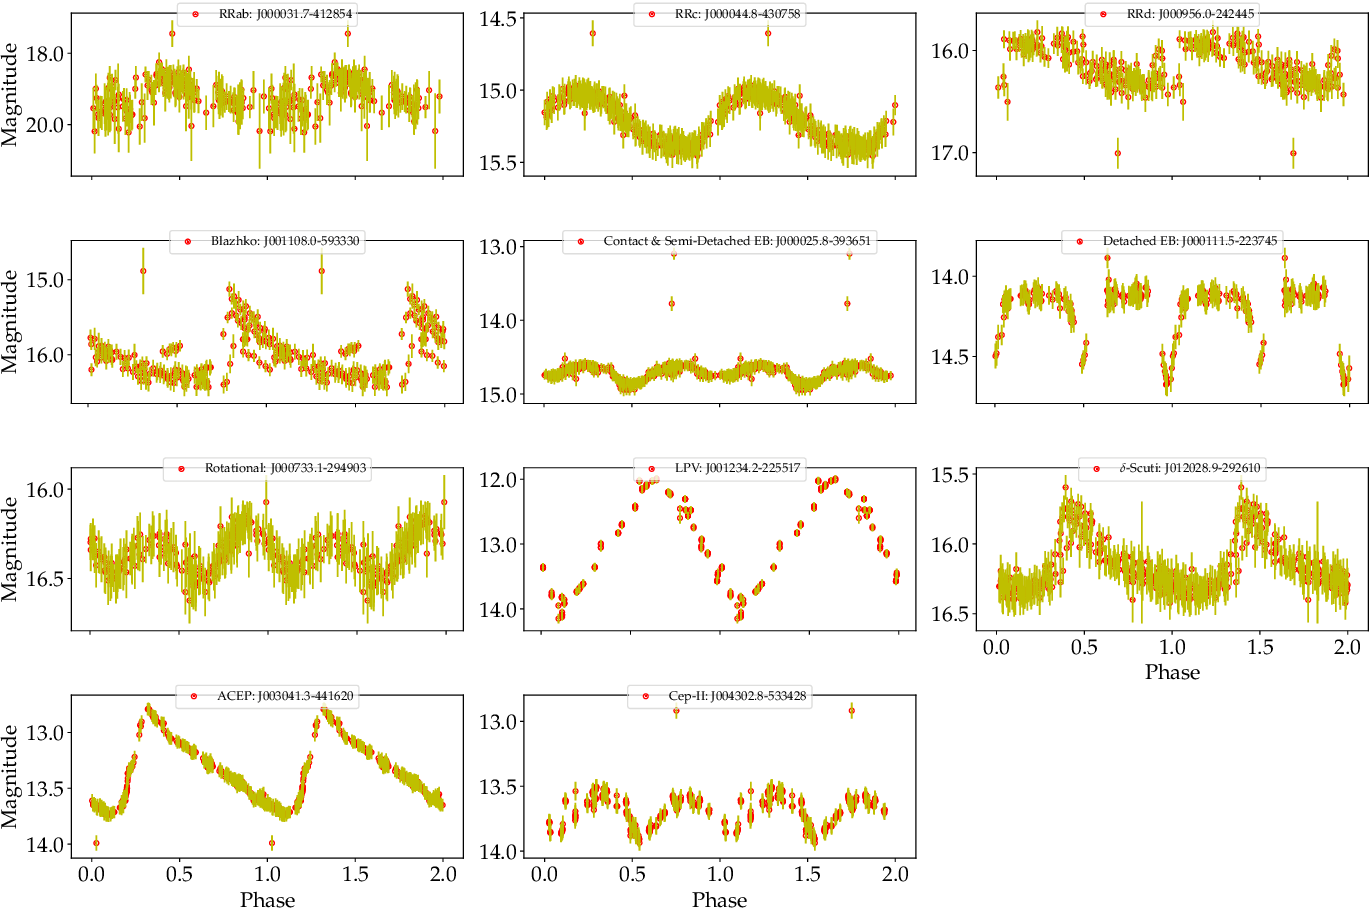 Figure 1 for Comparing Multi-class, Binary and Hierarchical Machine Learning Classification schemes for variable stars